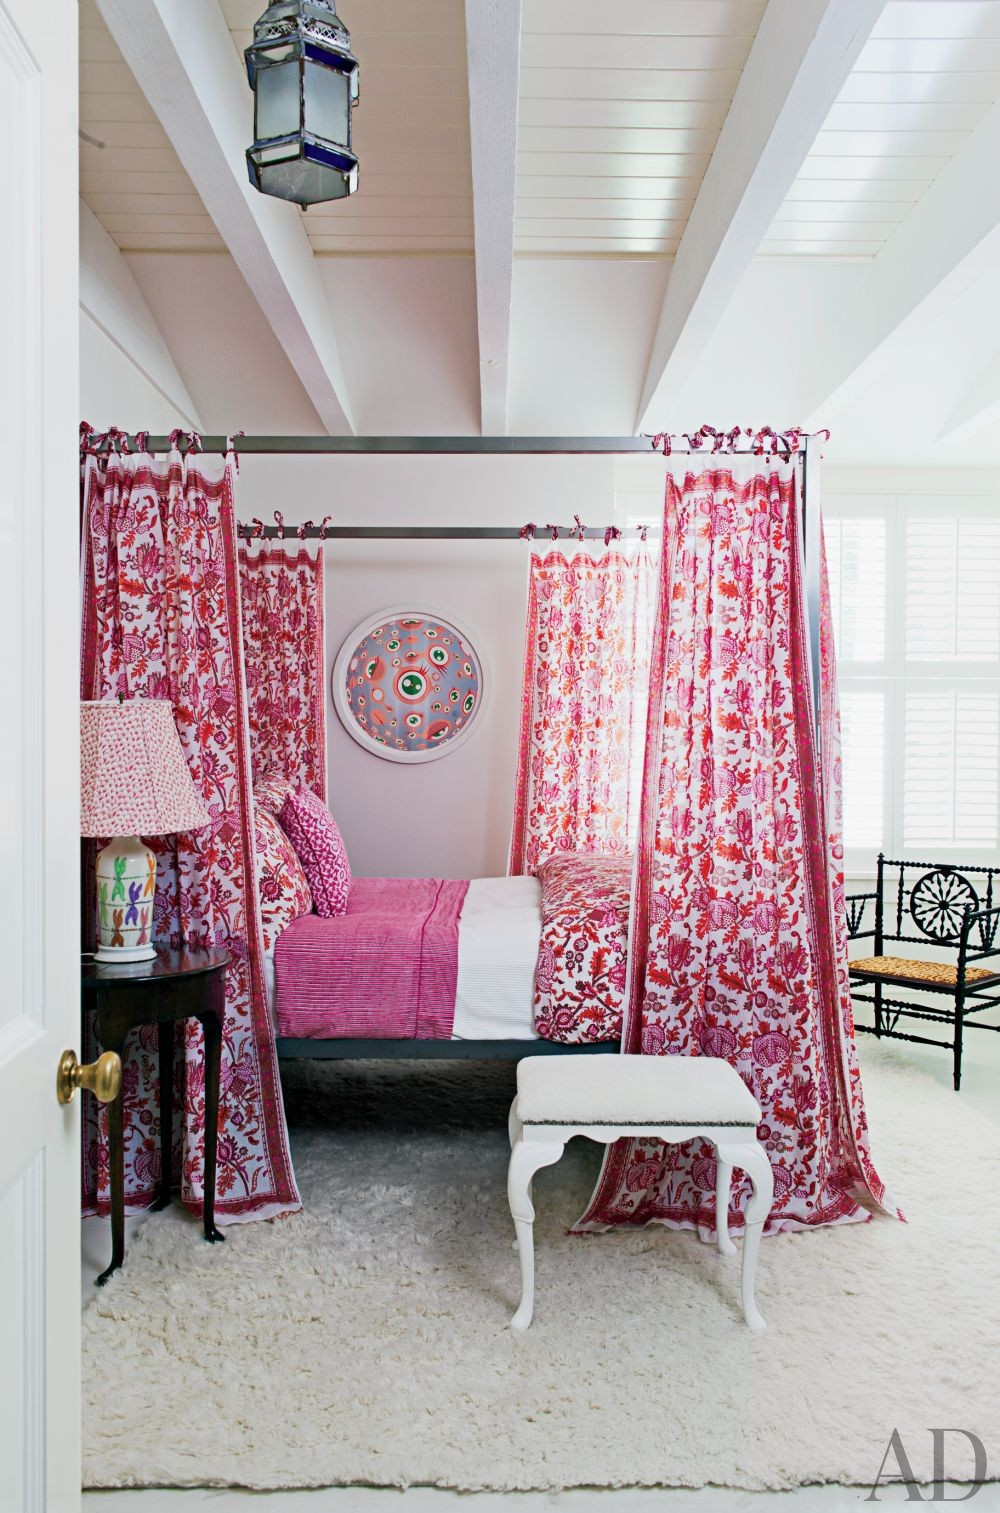 Boho pink four poster bed as the centerpiece of the room